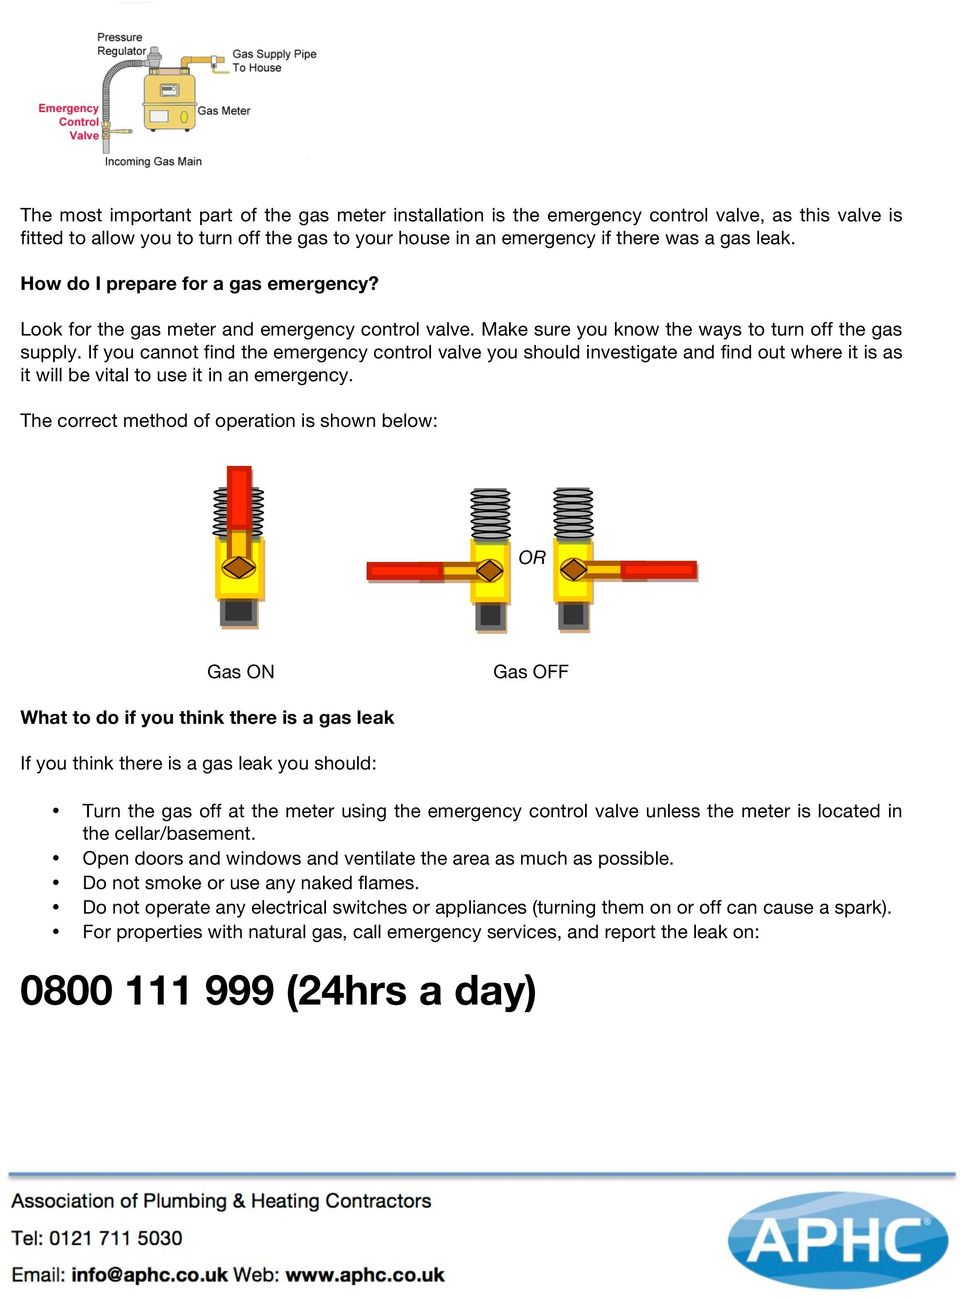 If you cannot find the emergency control valve you should investigate and find out where it is as it will be vital to use it in an emergency.